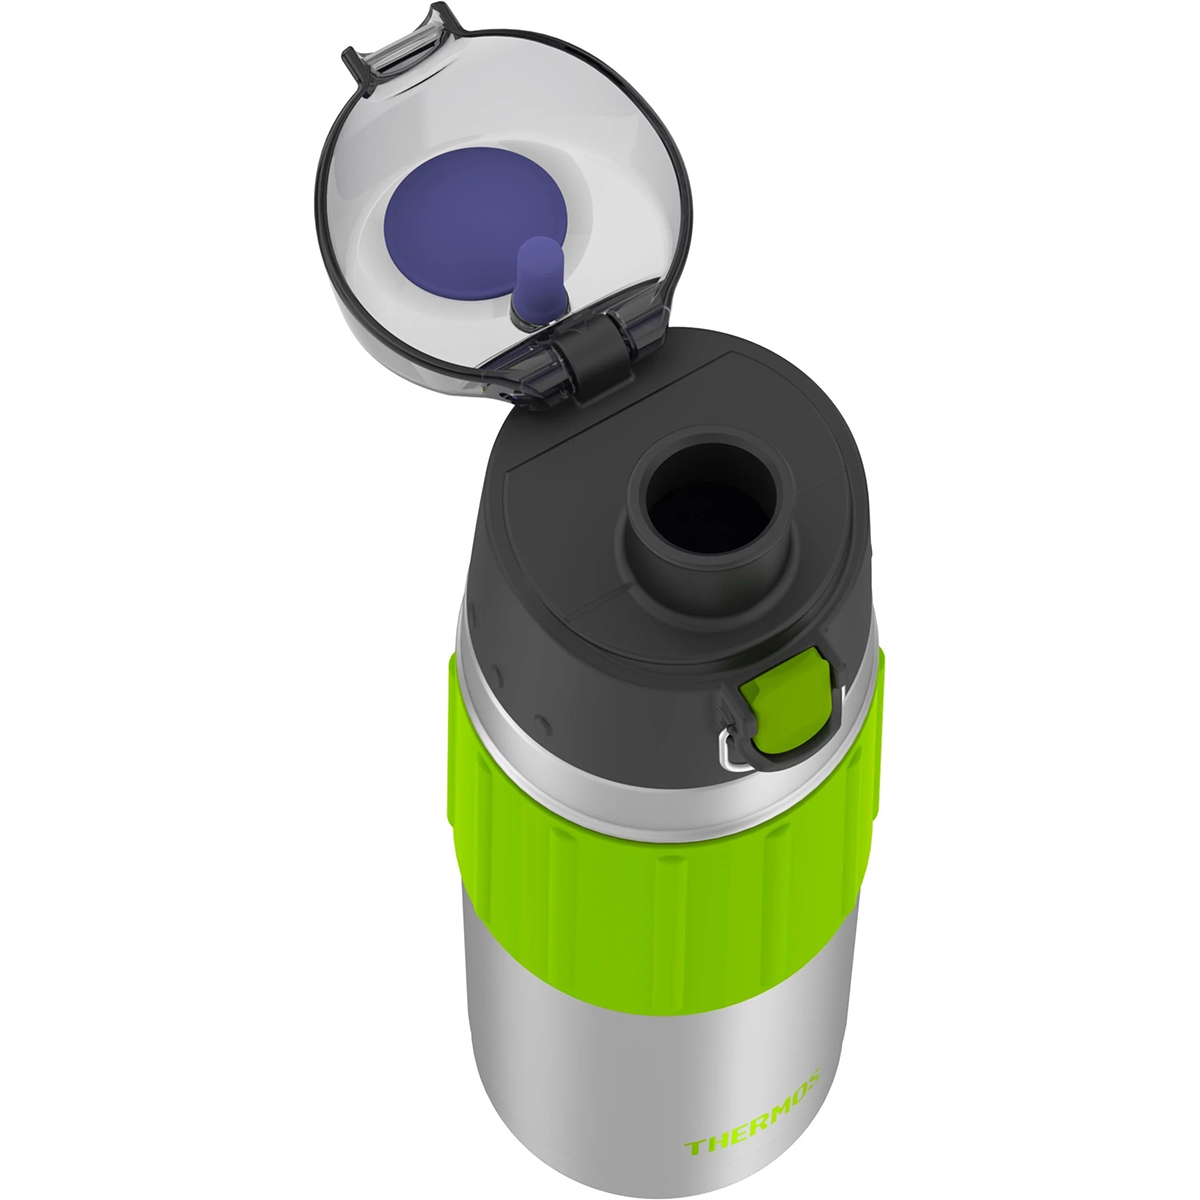 Thermos-18-oz-Vacuum-Insulated-Stainless-Steel-Hydration-Water-Bottle thumbnail 8